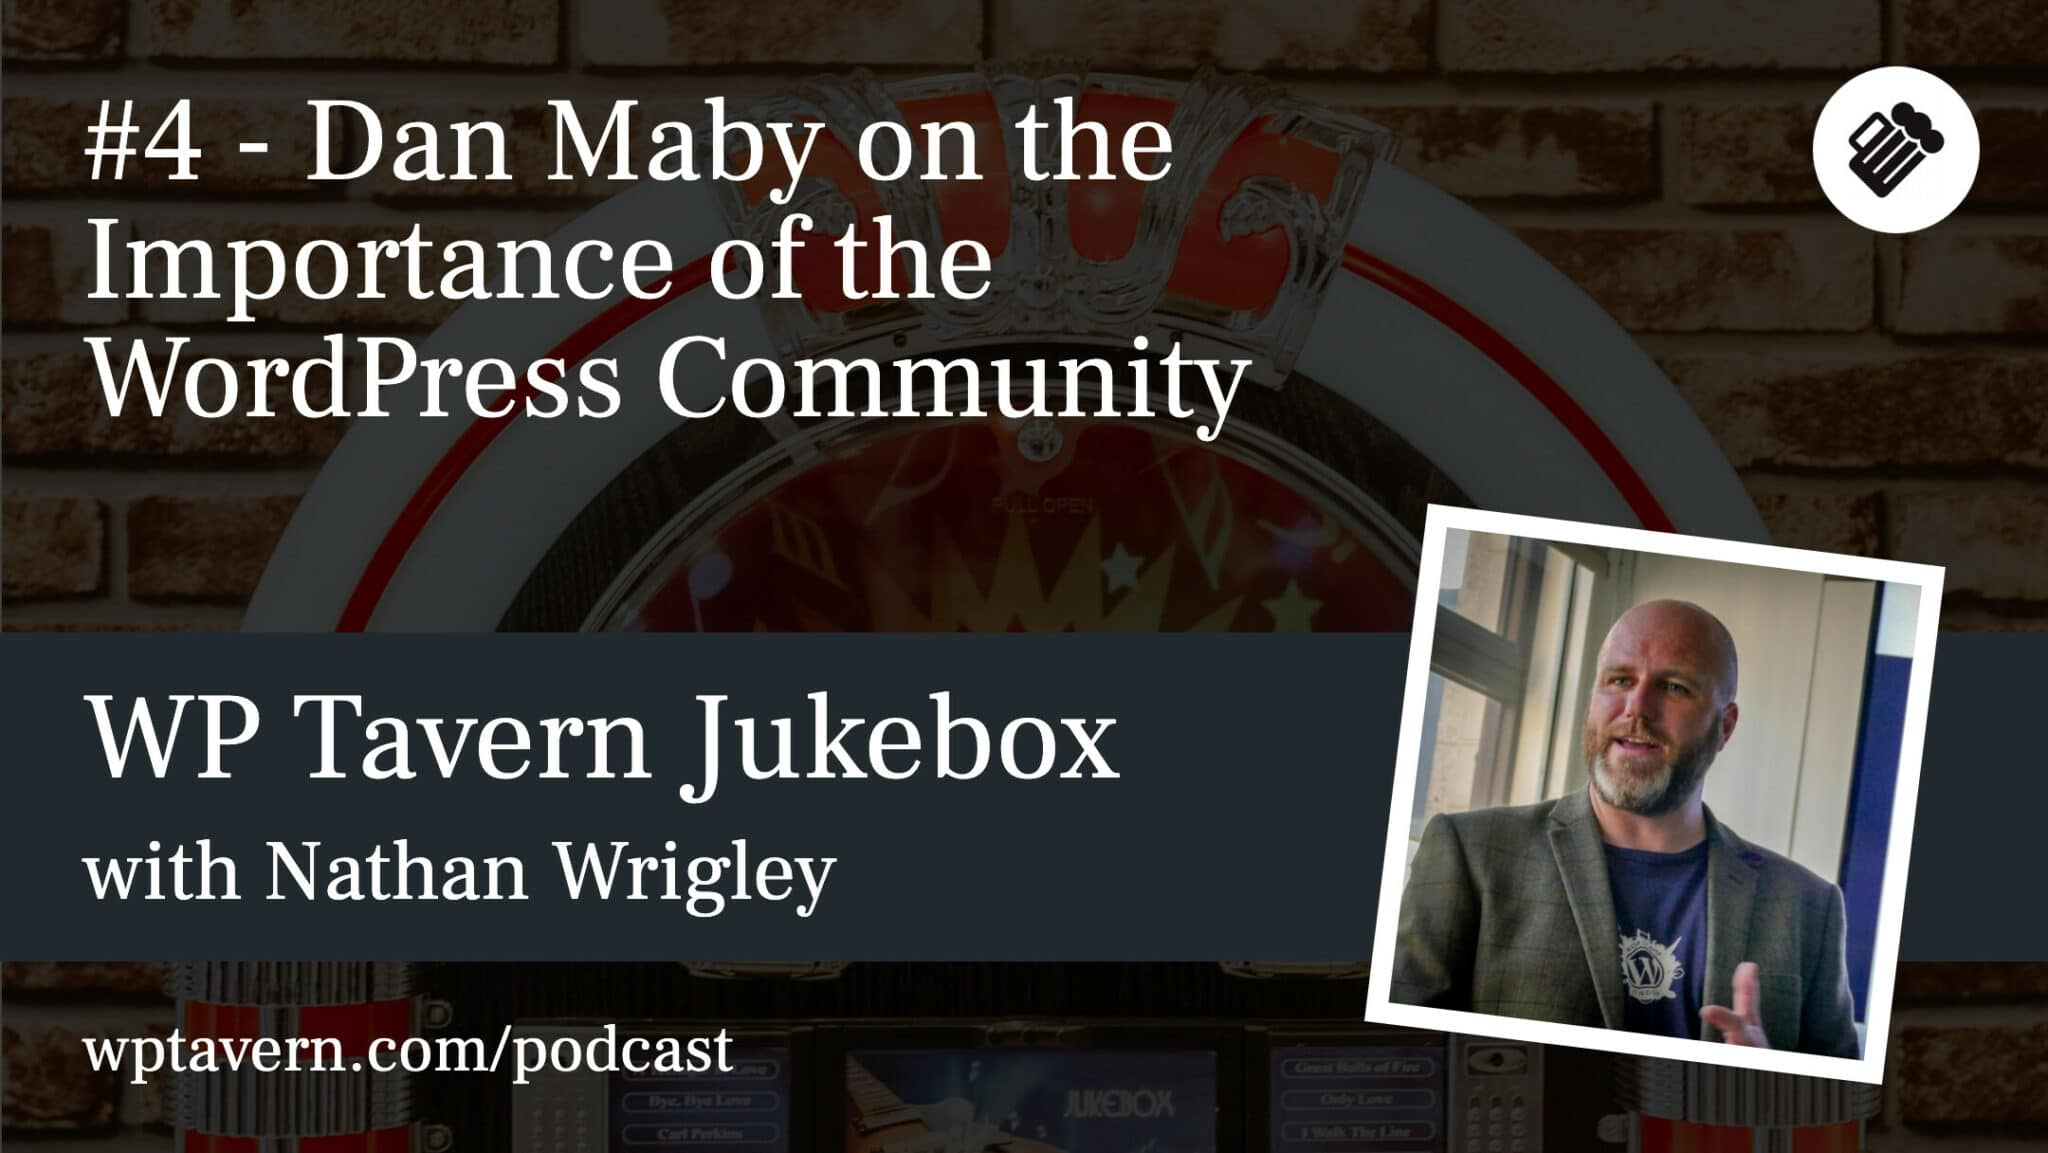 #4 – Dan Maby on the Importance of the WordPress Community